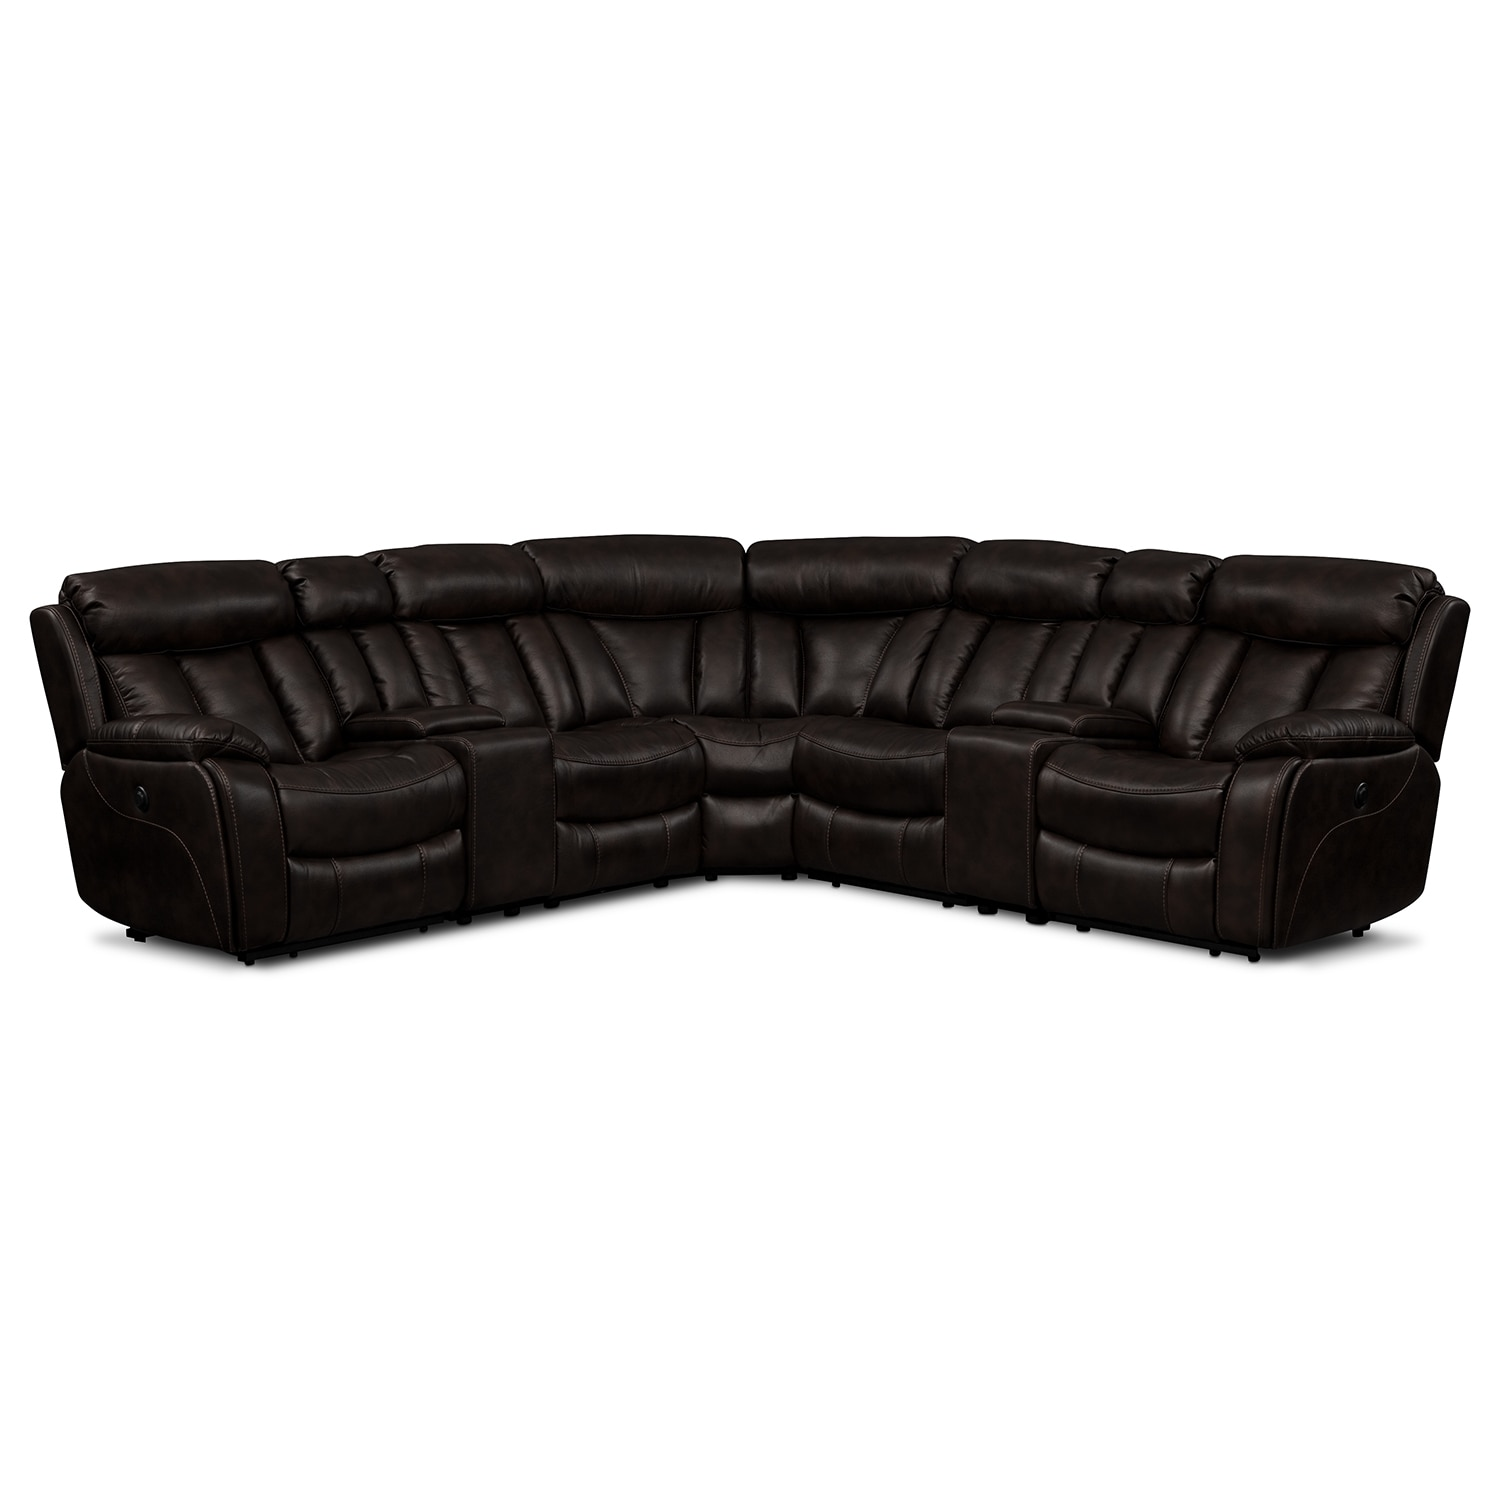 Living Room Furniture - Diablo 7-Piece Power Reclining Sectional with Armless Recliner - Walnut